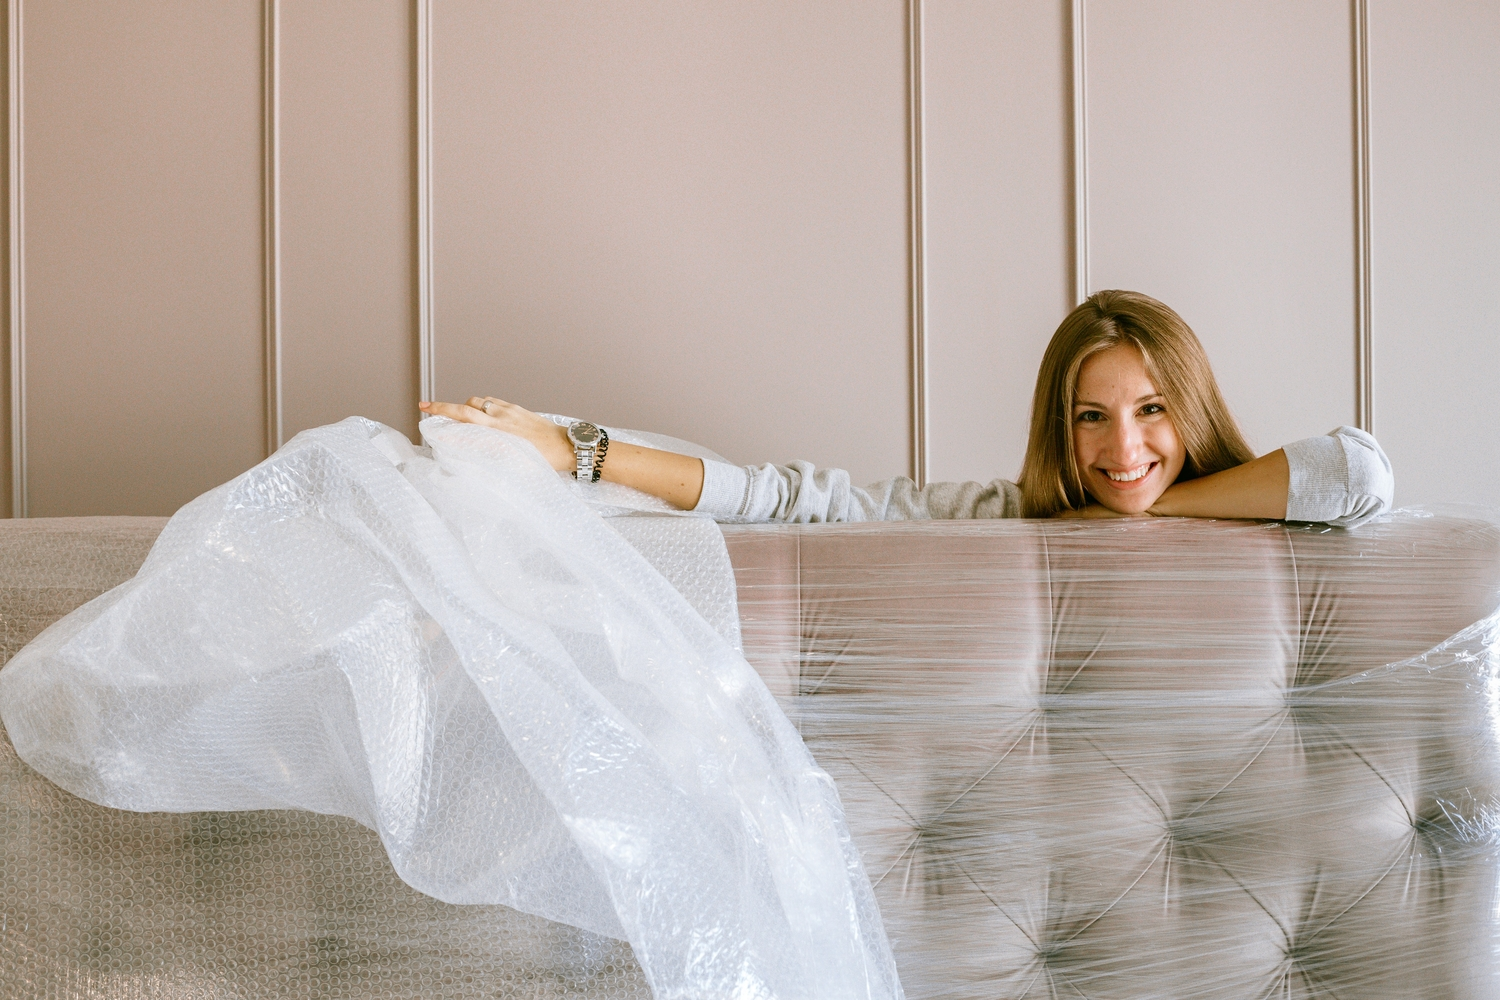 Lady unwrapping plastic off couch after moving